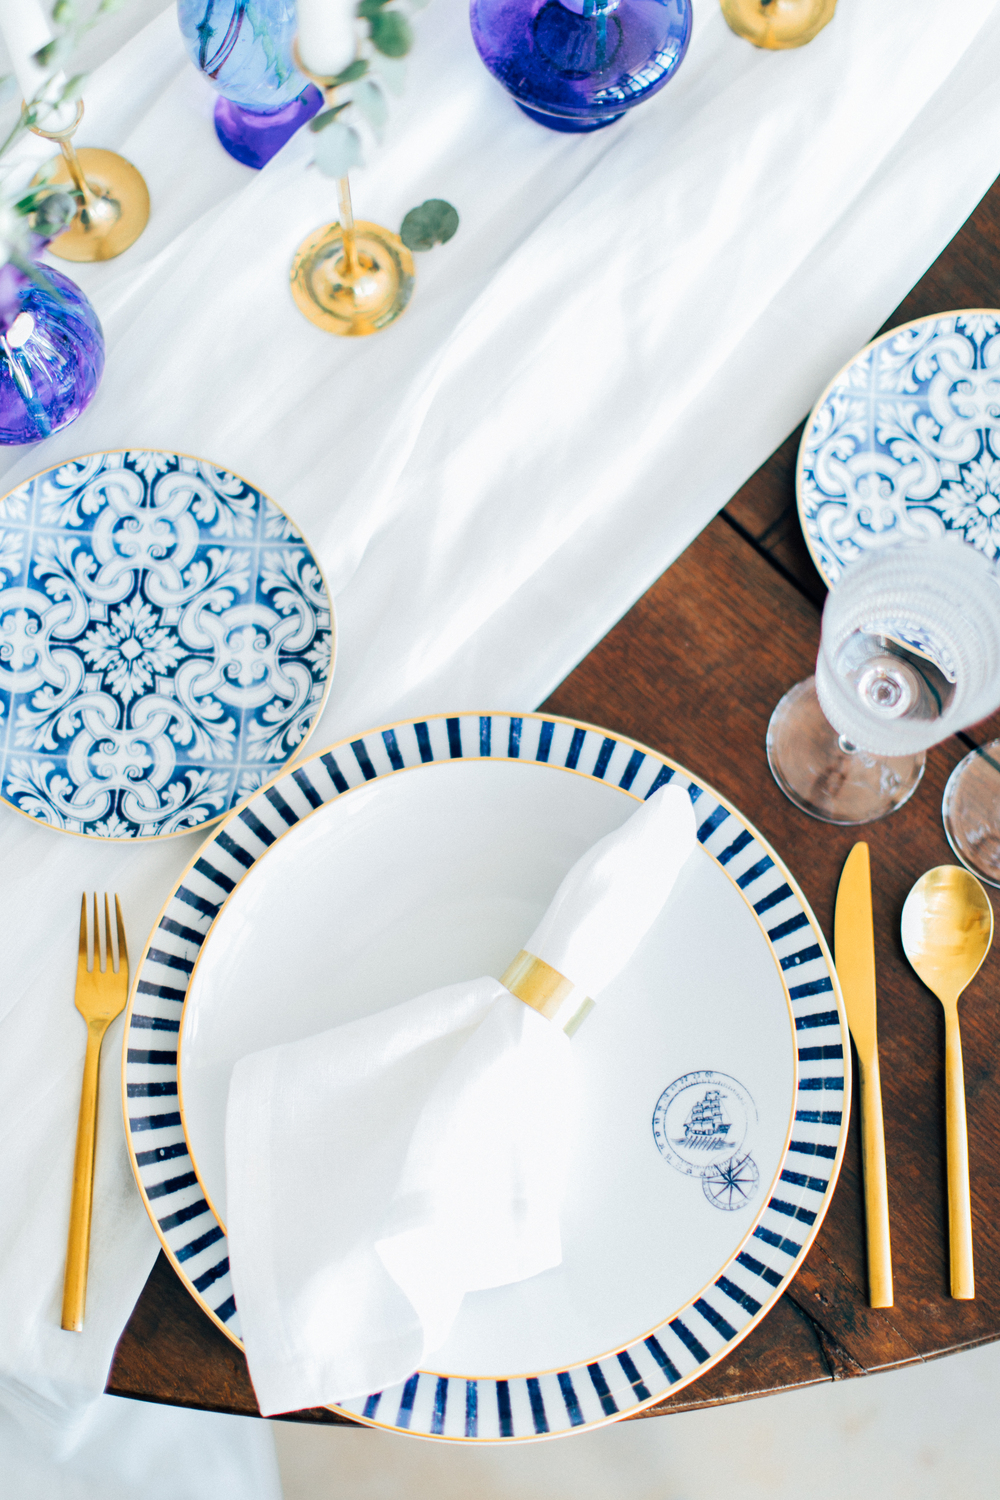 wedding table, table details, table decoration, dinnerware, tableware, golden accents